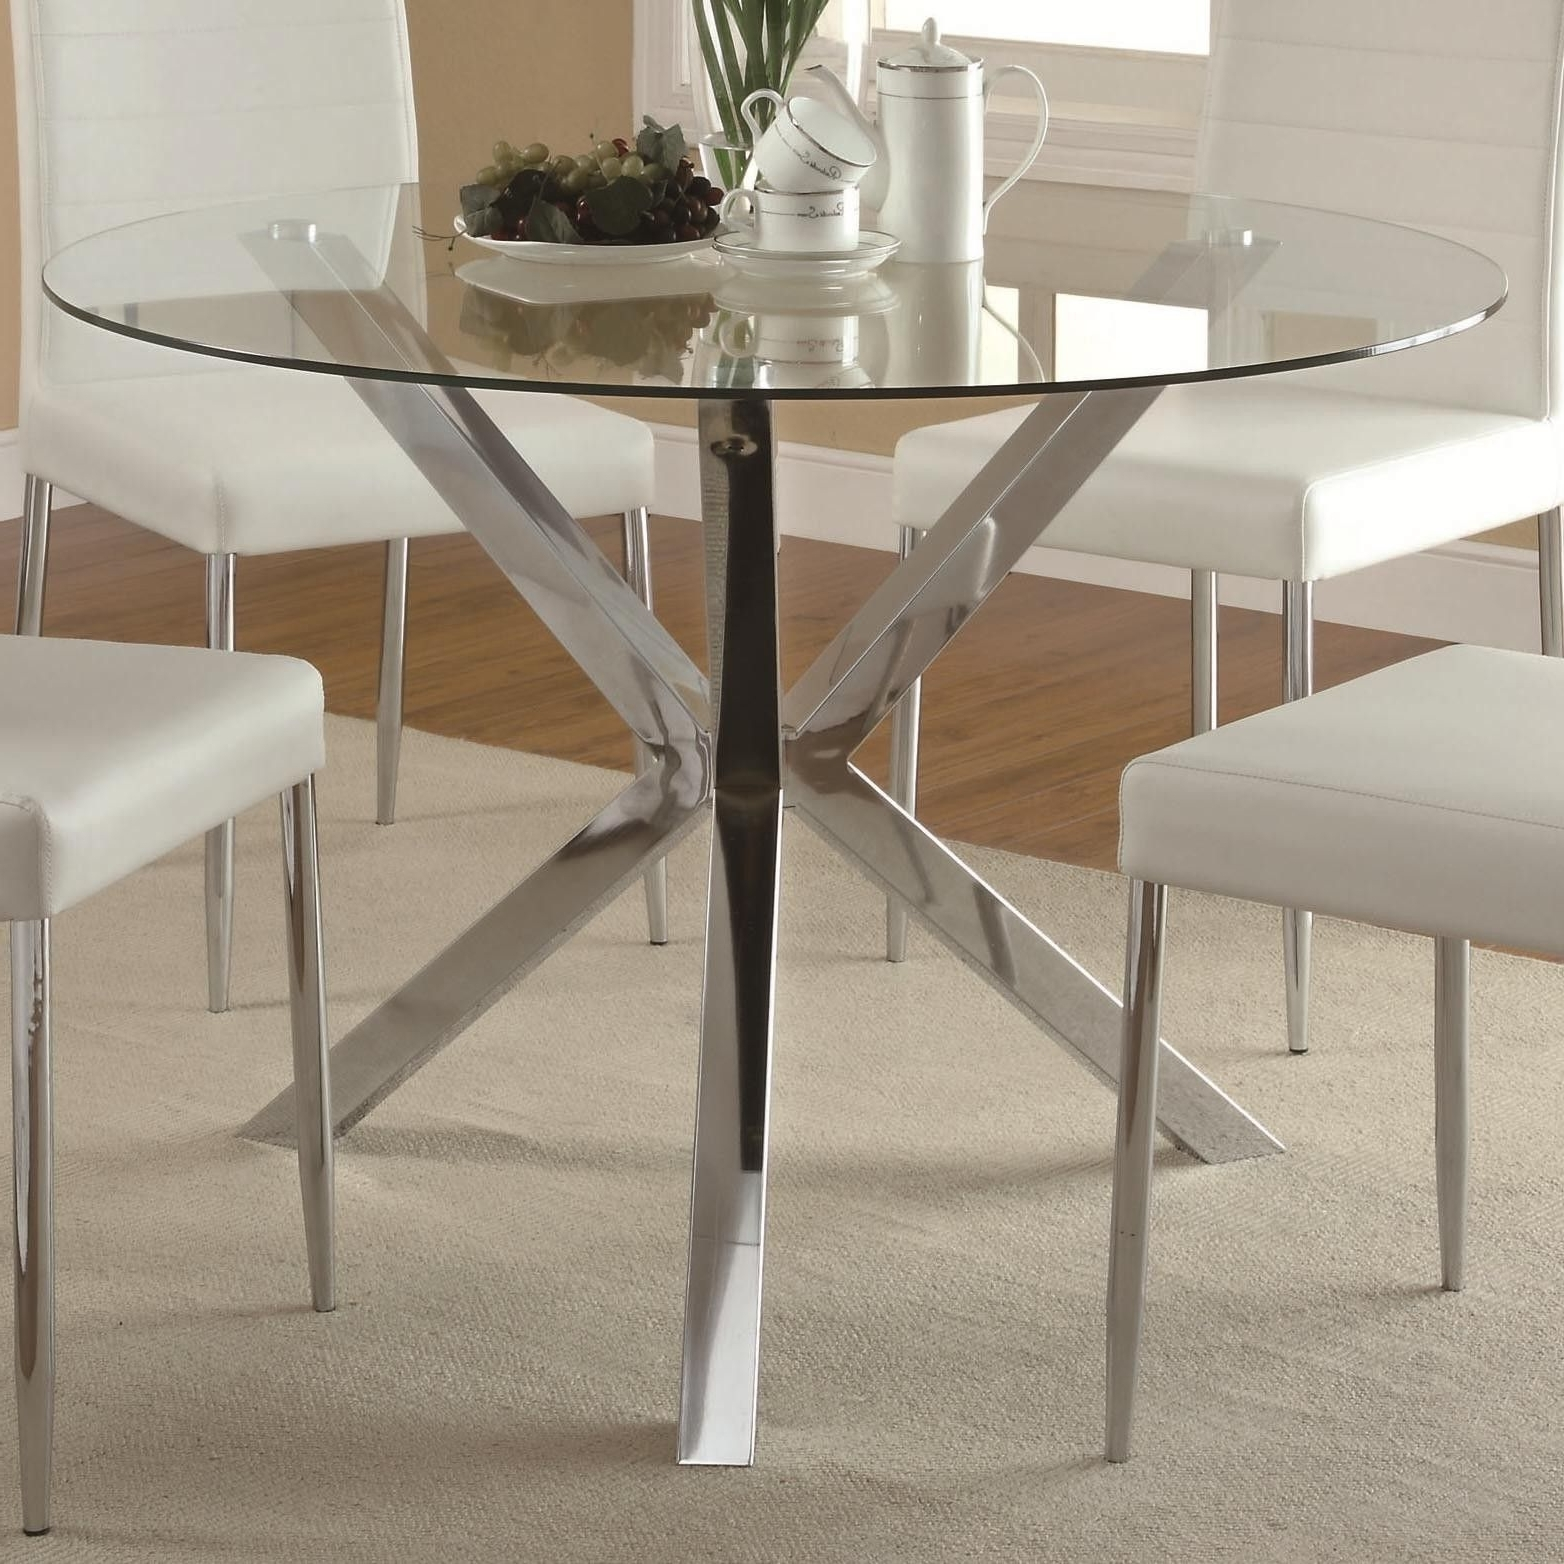 Recent Vance Glass Top Dining Table With Unique Chrome Base 120760 Qlx1 With Regard To Lassen 7 Piece Extension Rectangle Dining Sets (View 22 of 25)